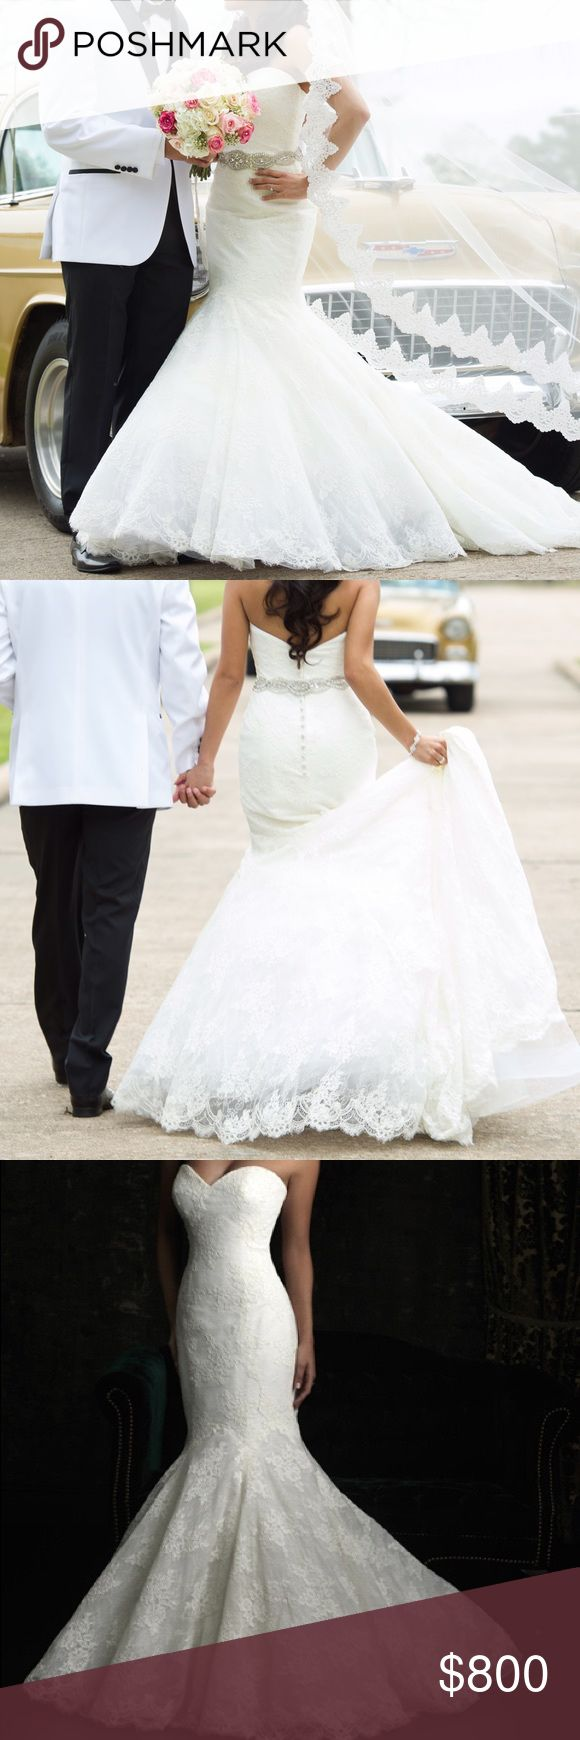 Allure Bridals wedding dress Style 8970.. Mermaid shape strapless ivory lace dress Dresses Wedding